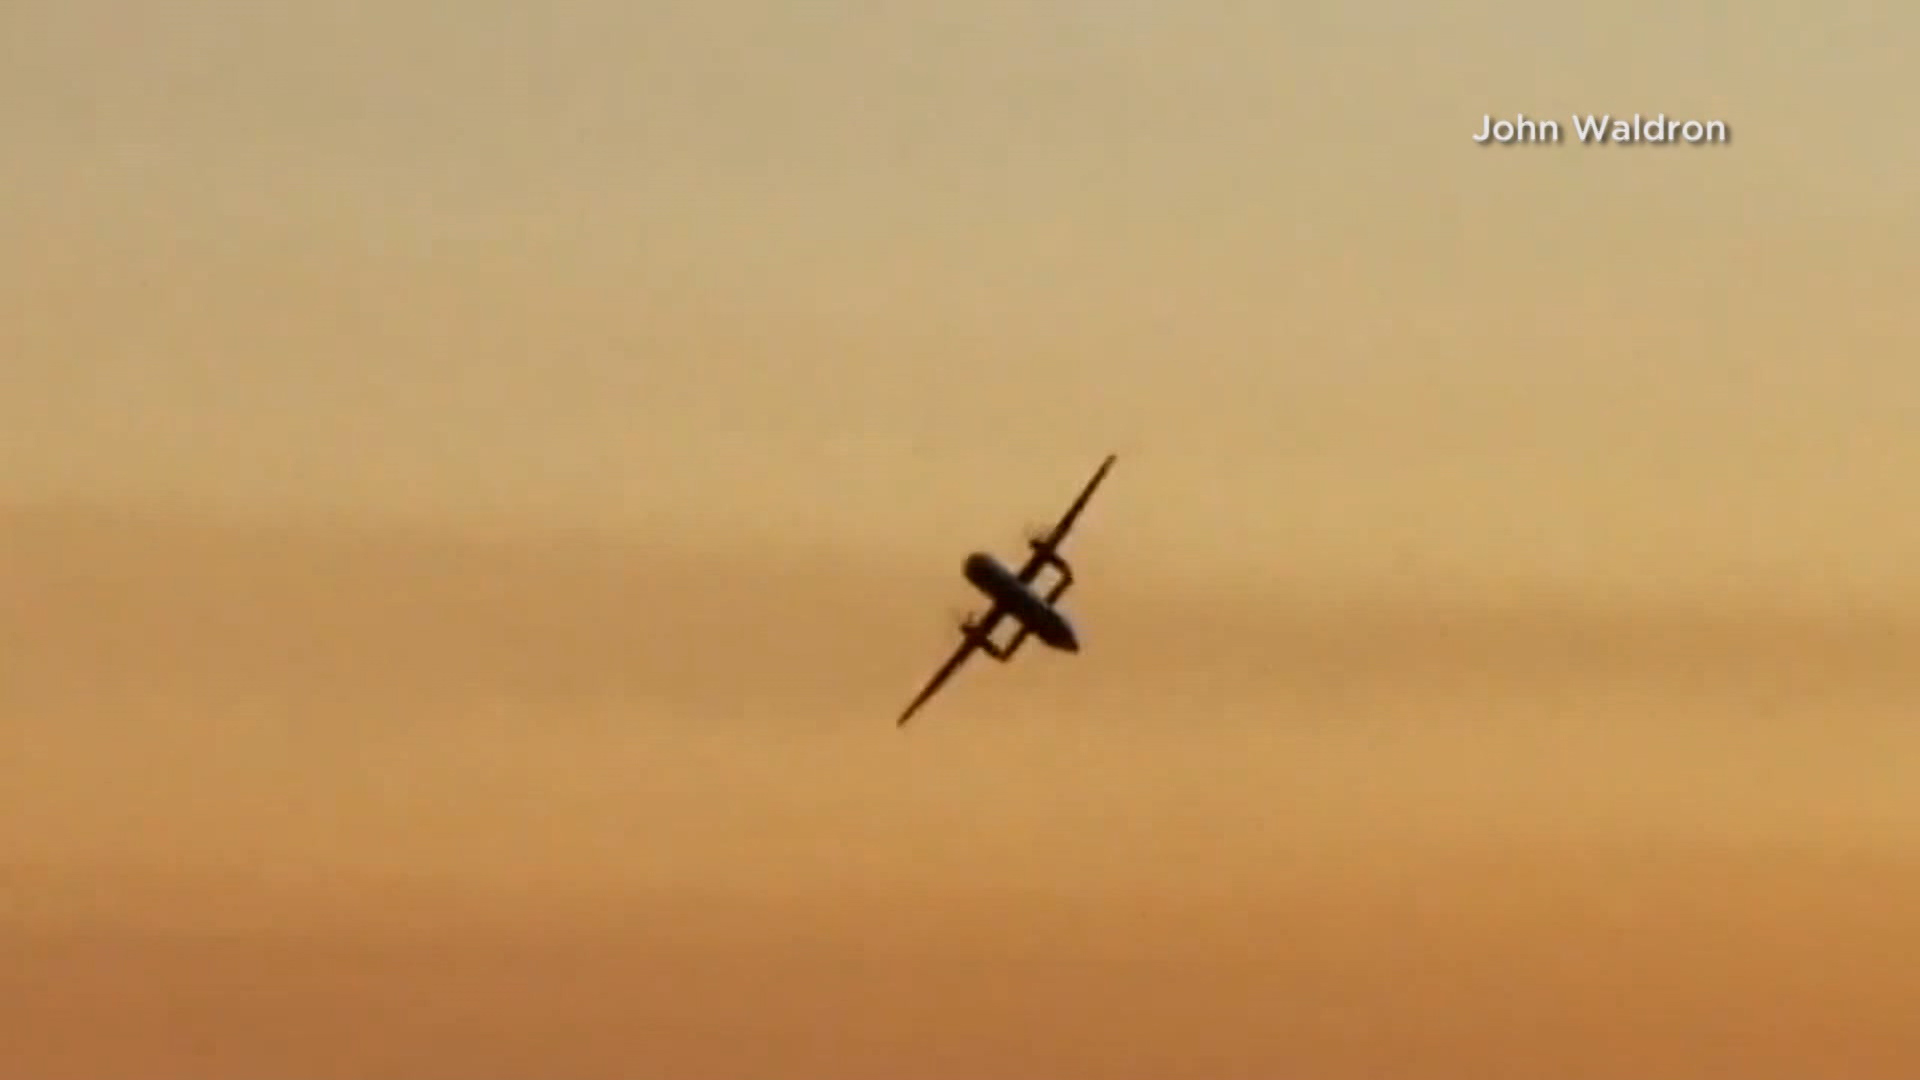 Video shows plane flying with F-15 fighter jet following, before later  crashing